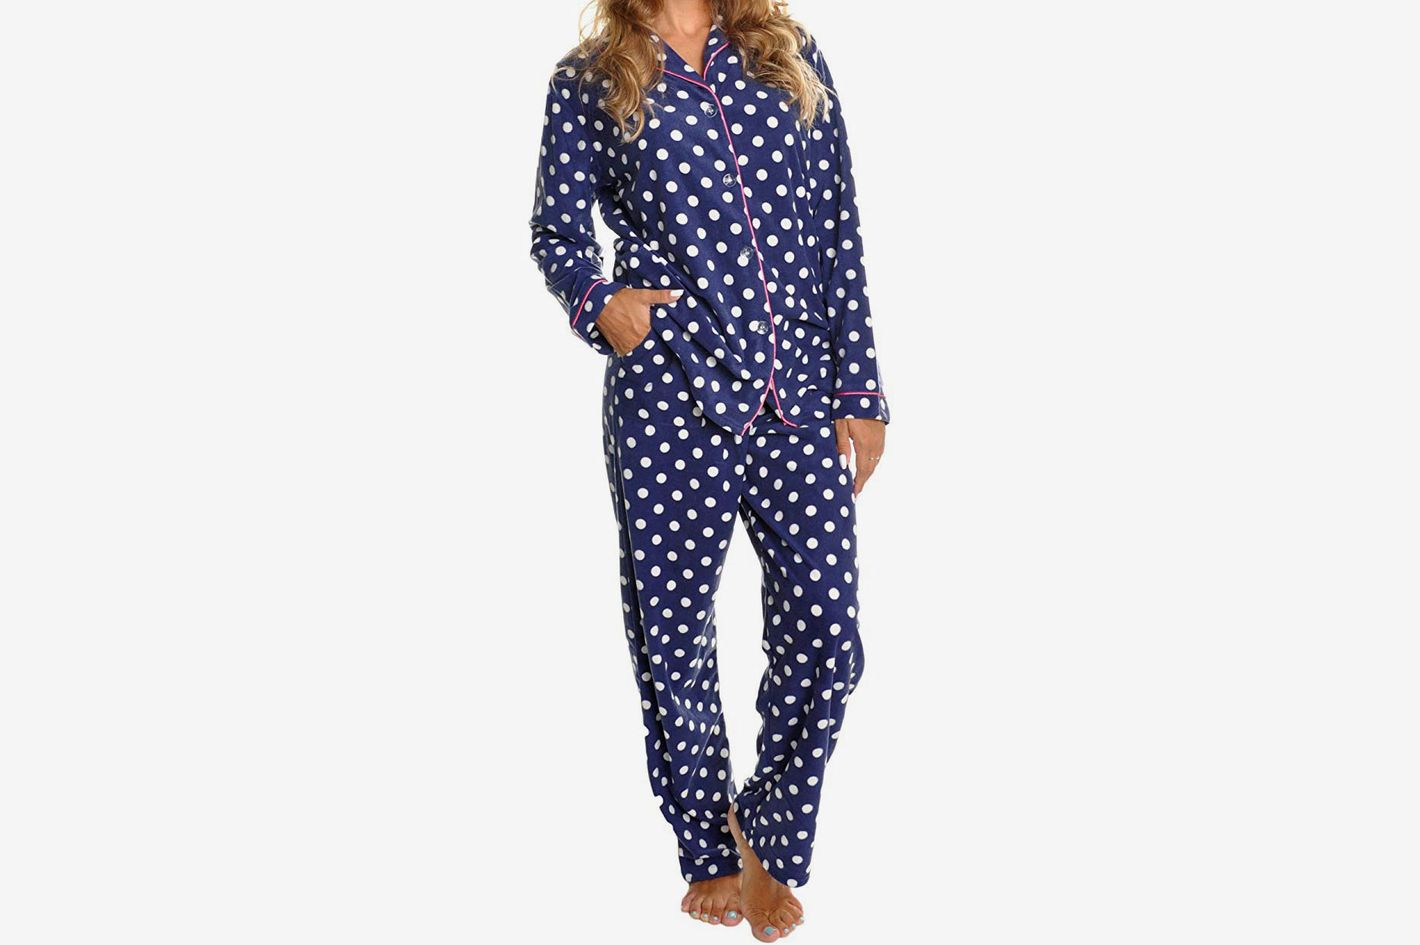 efb5d564179d 21 Best Women s Pajamas Under  50 on Amazon  2018